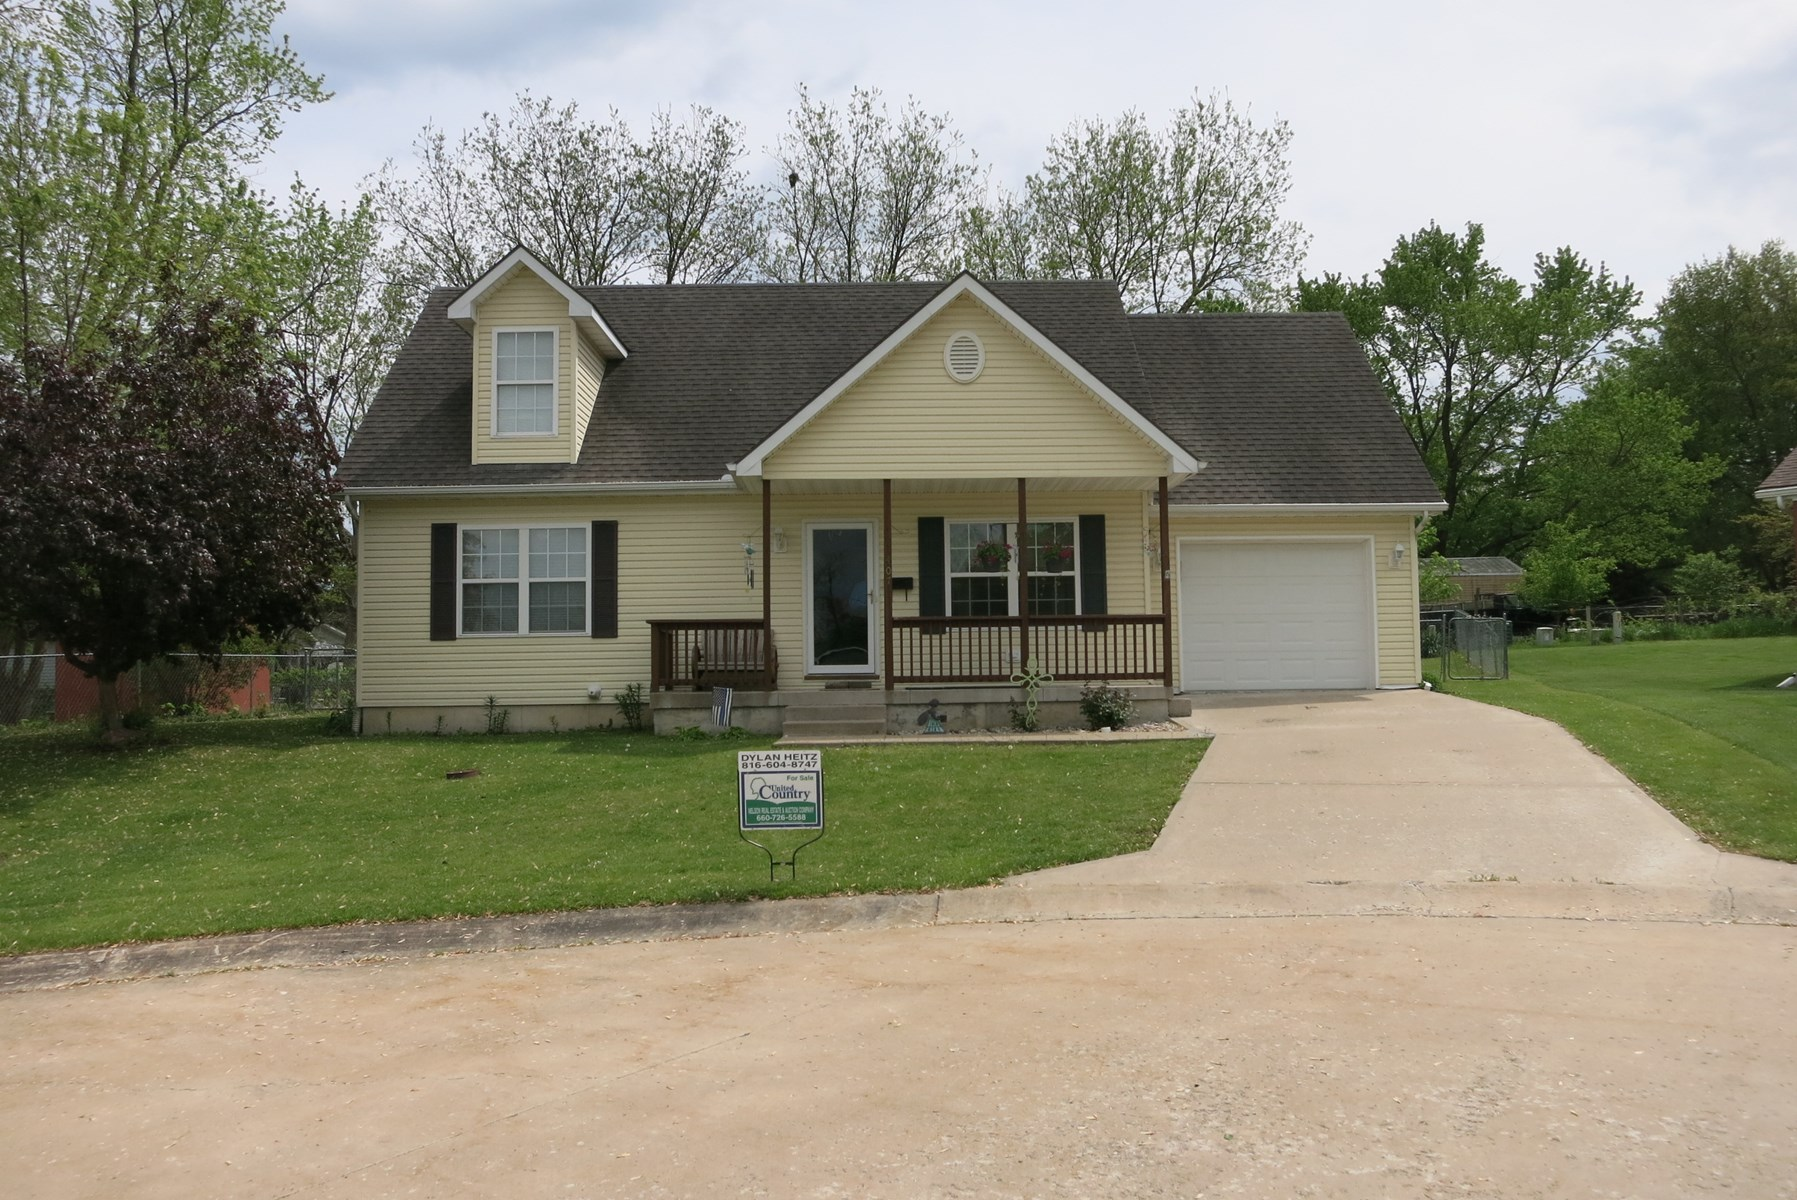 For Sale 1.5 Story House in Cameron, MO